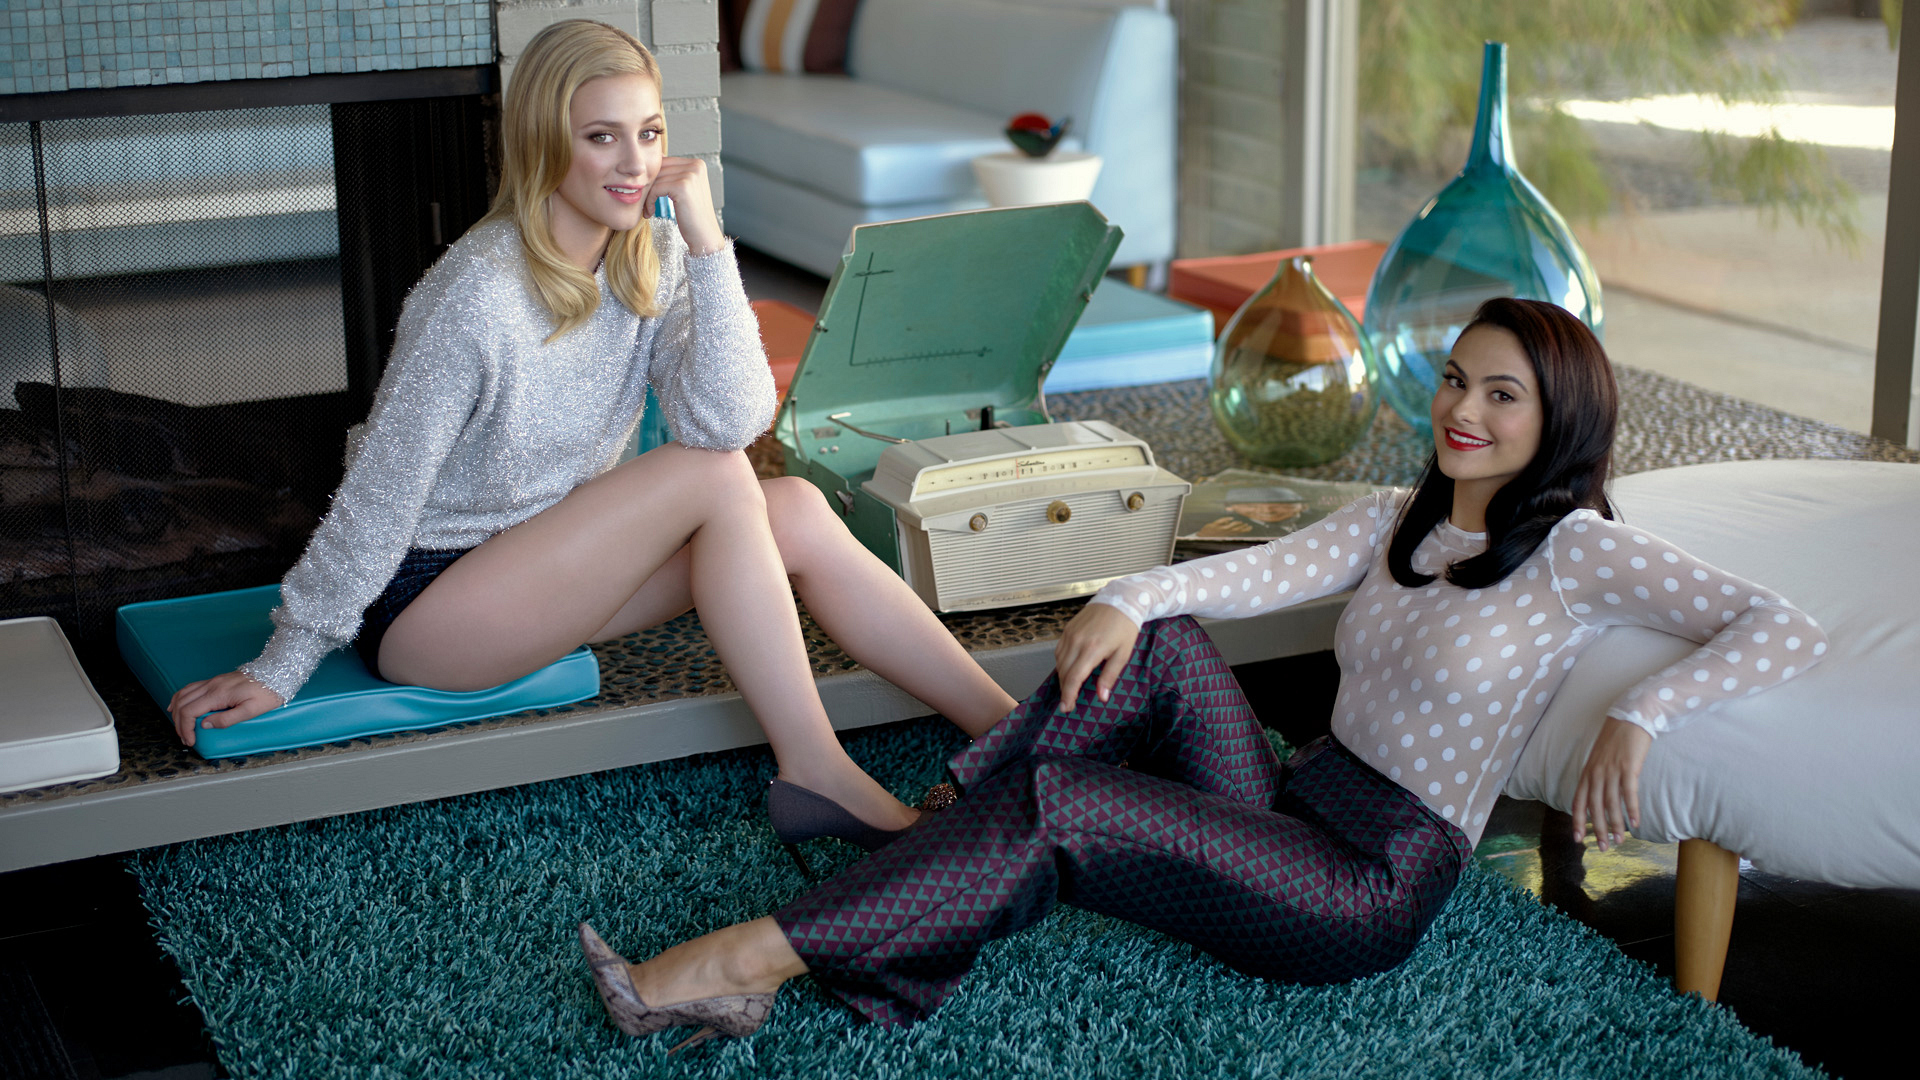 Camila Mendes and Lili Reinhart bring twice the spice to Riverdale